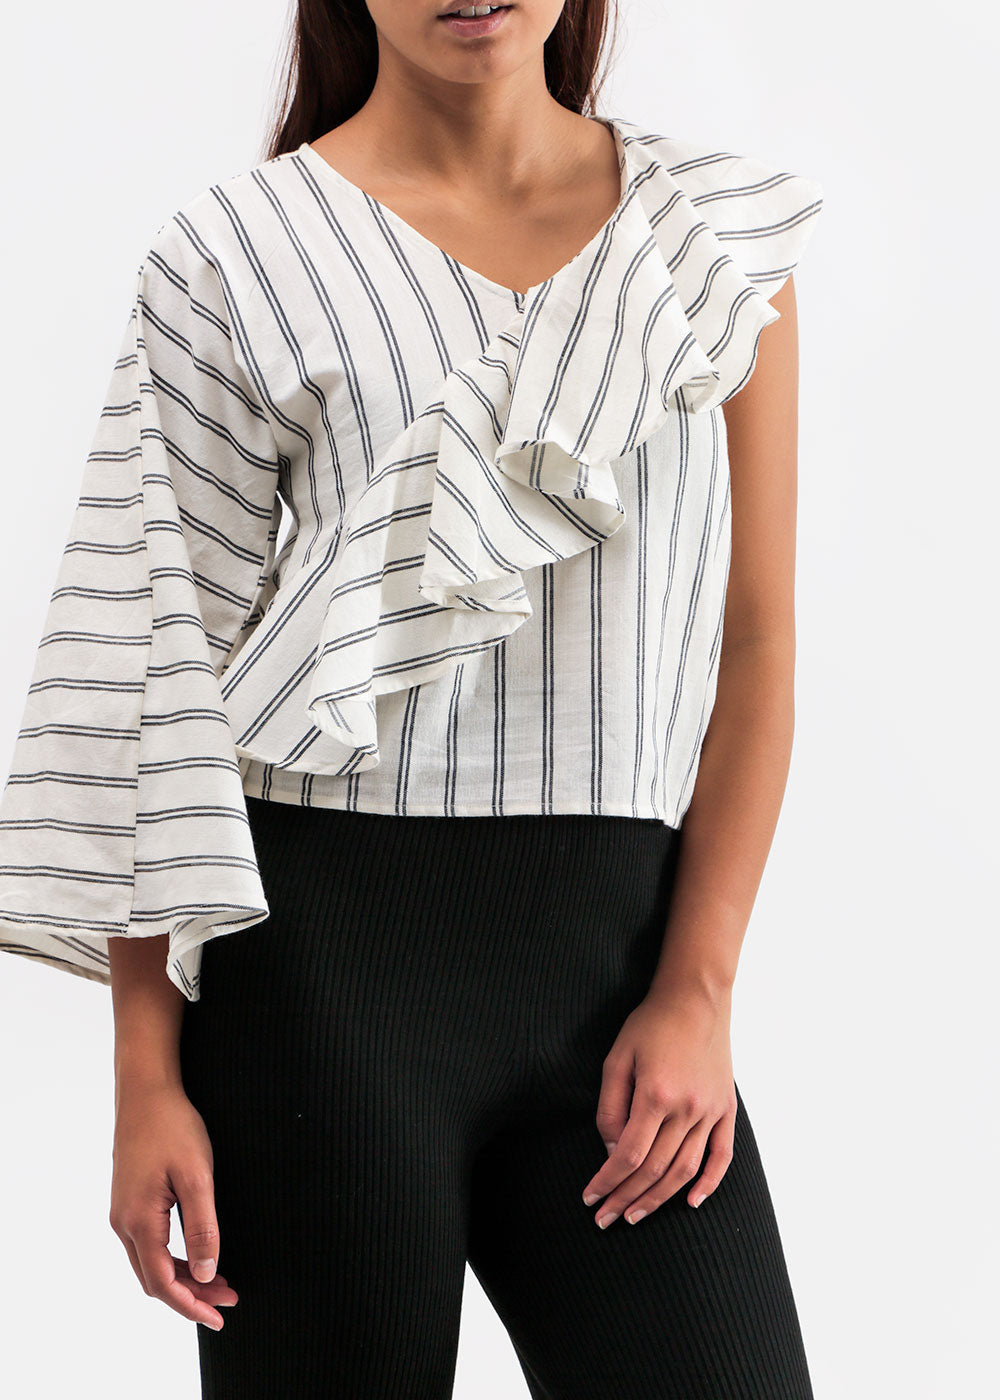 Ajaie Alaie Flamenca Top — Shop sustainable fashion and slow fashion at New Classics Studios